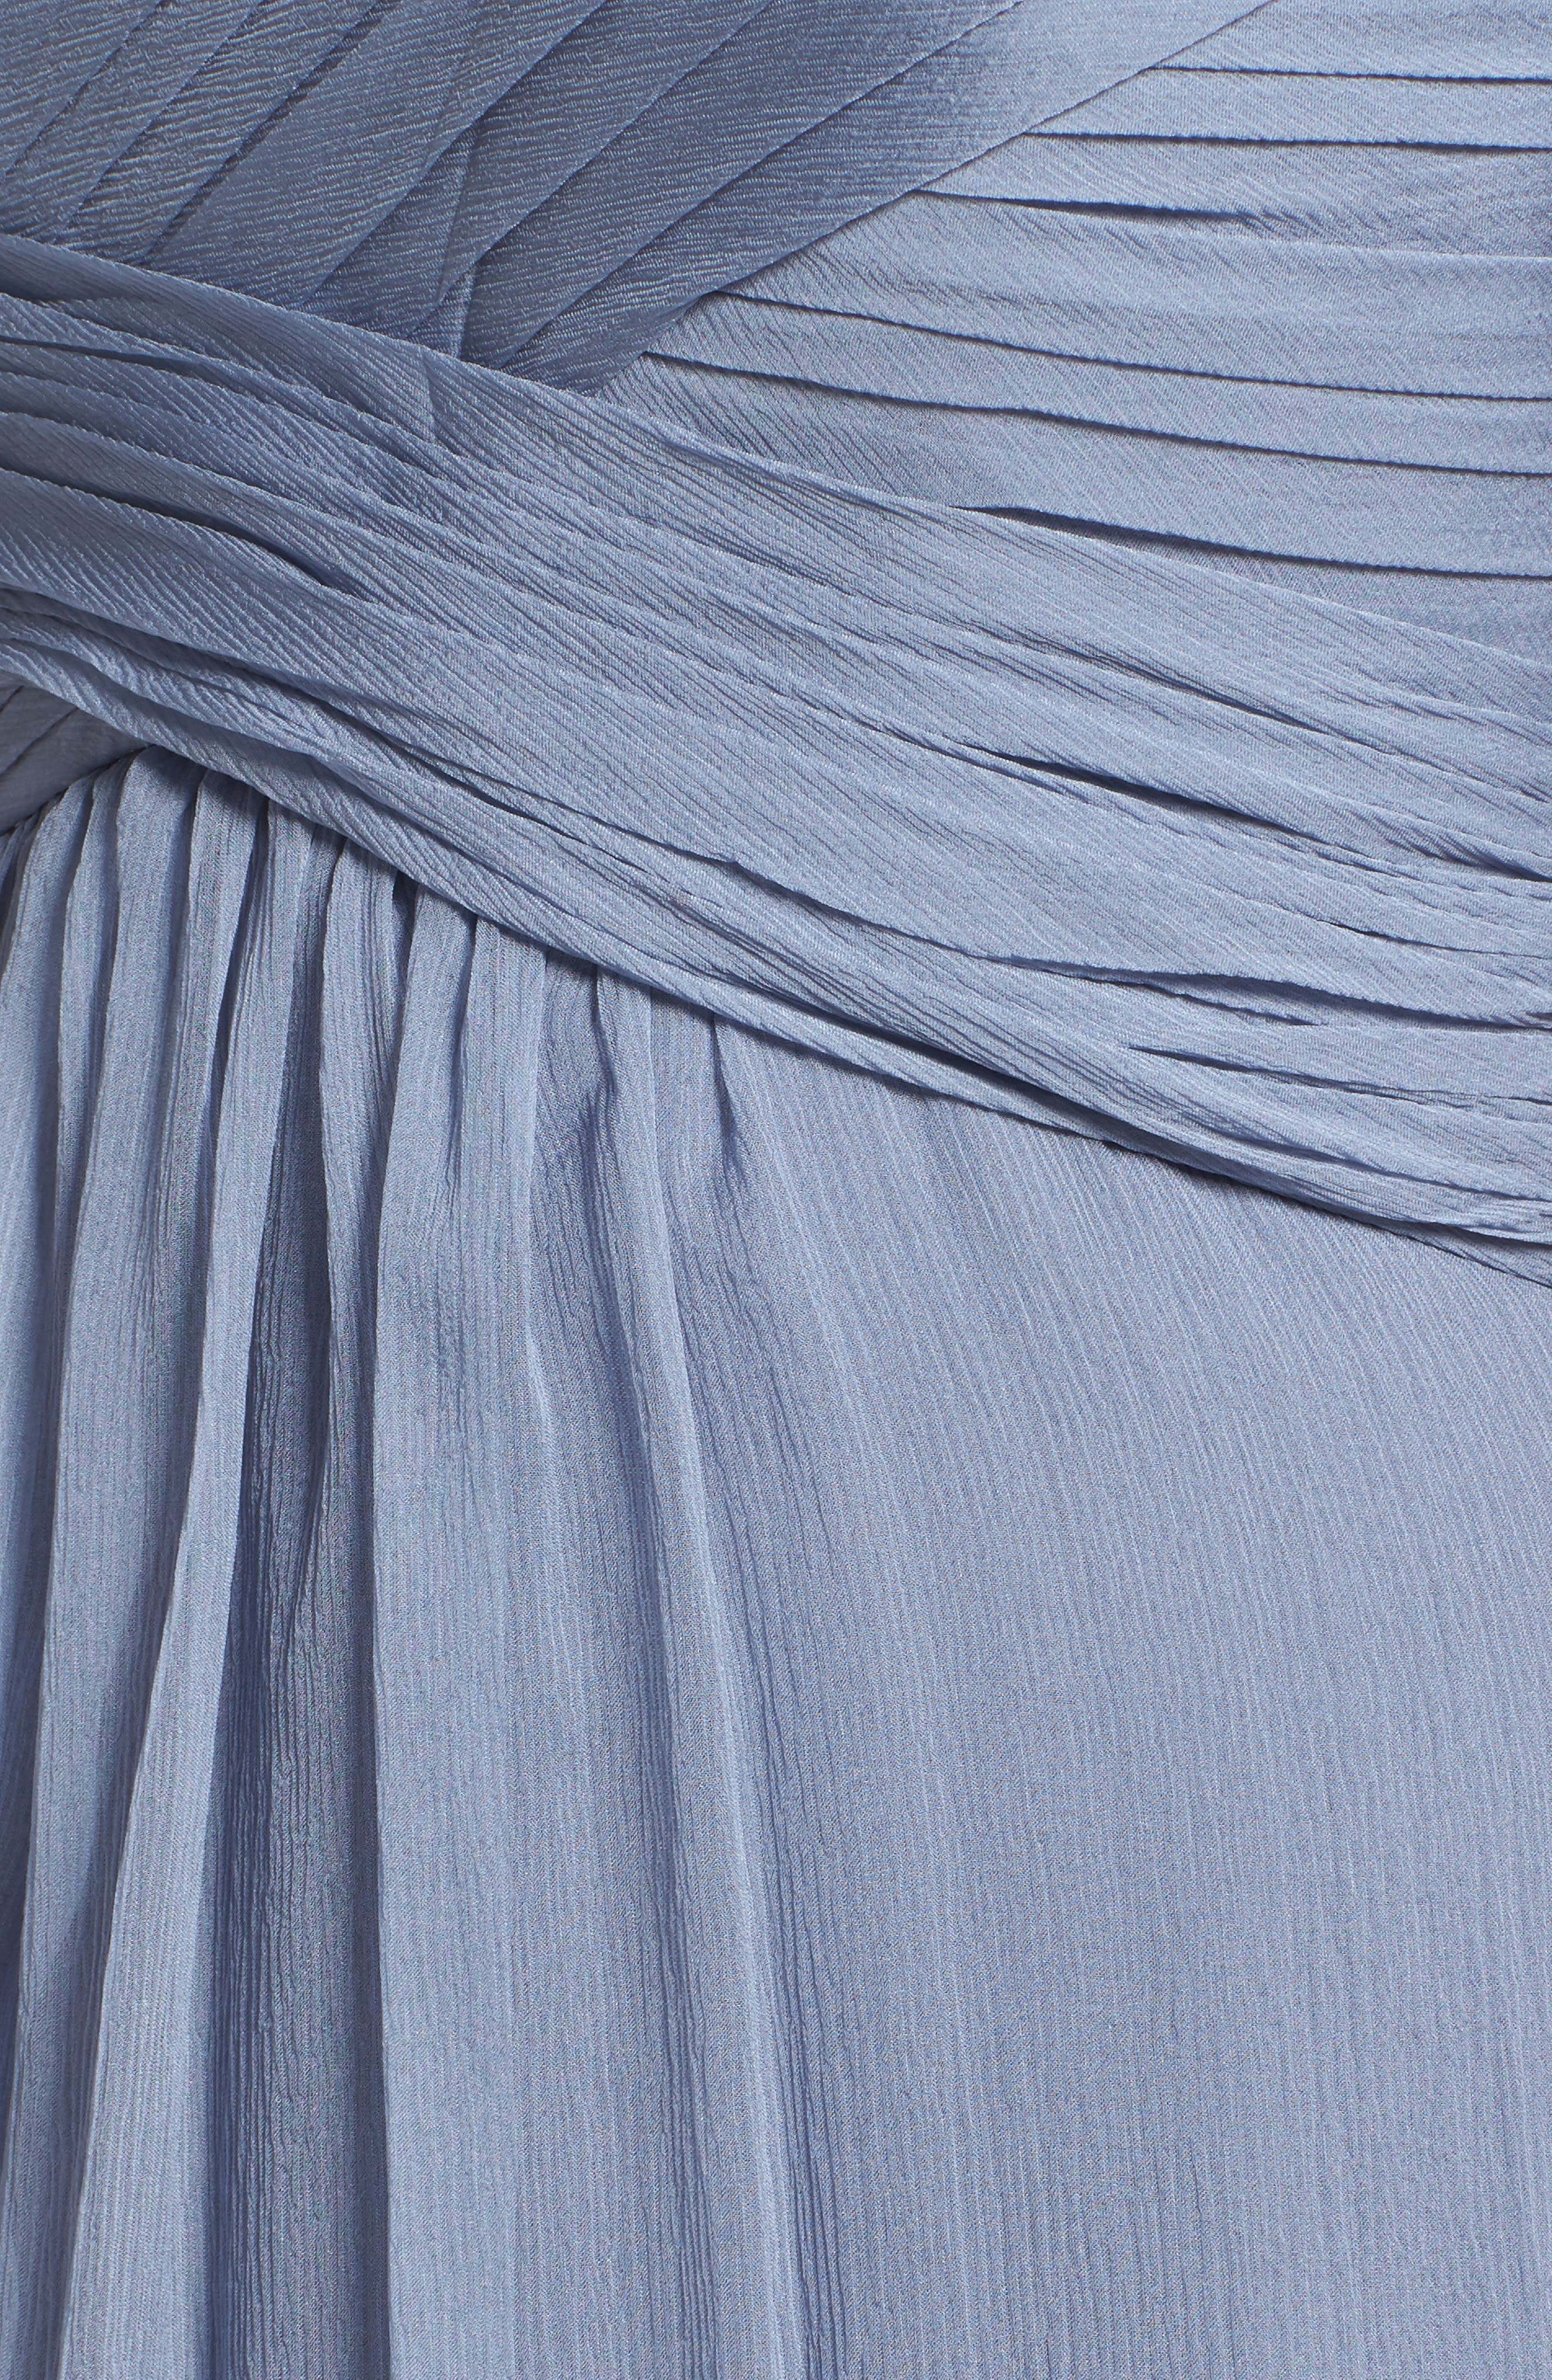 Convertible Crinkled Silk Chiffon Gown,                             Alternate thumbnail 5, color,                             022